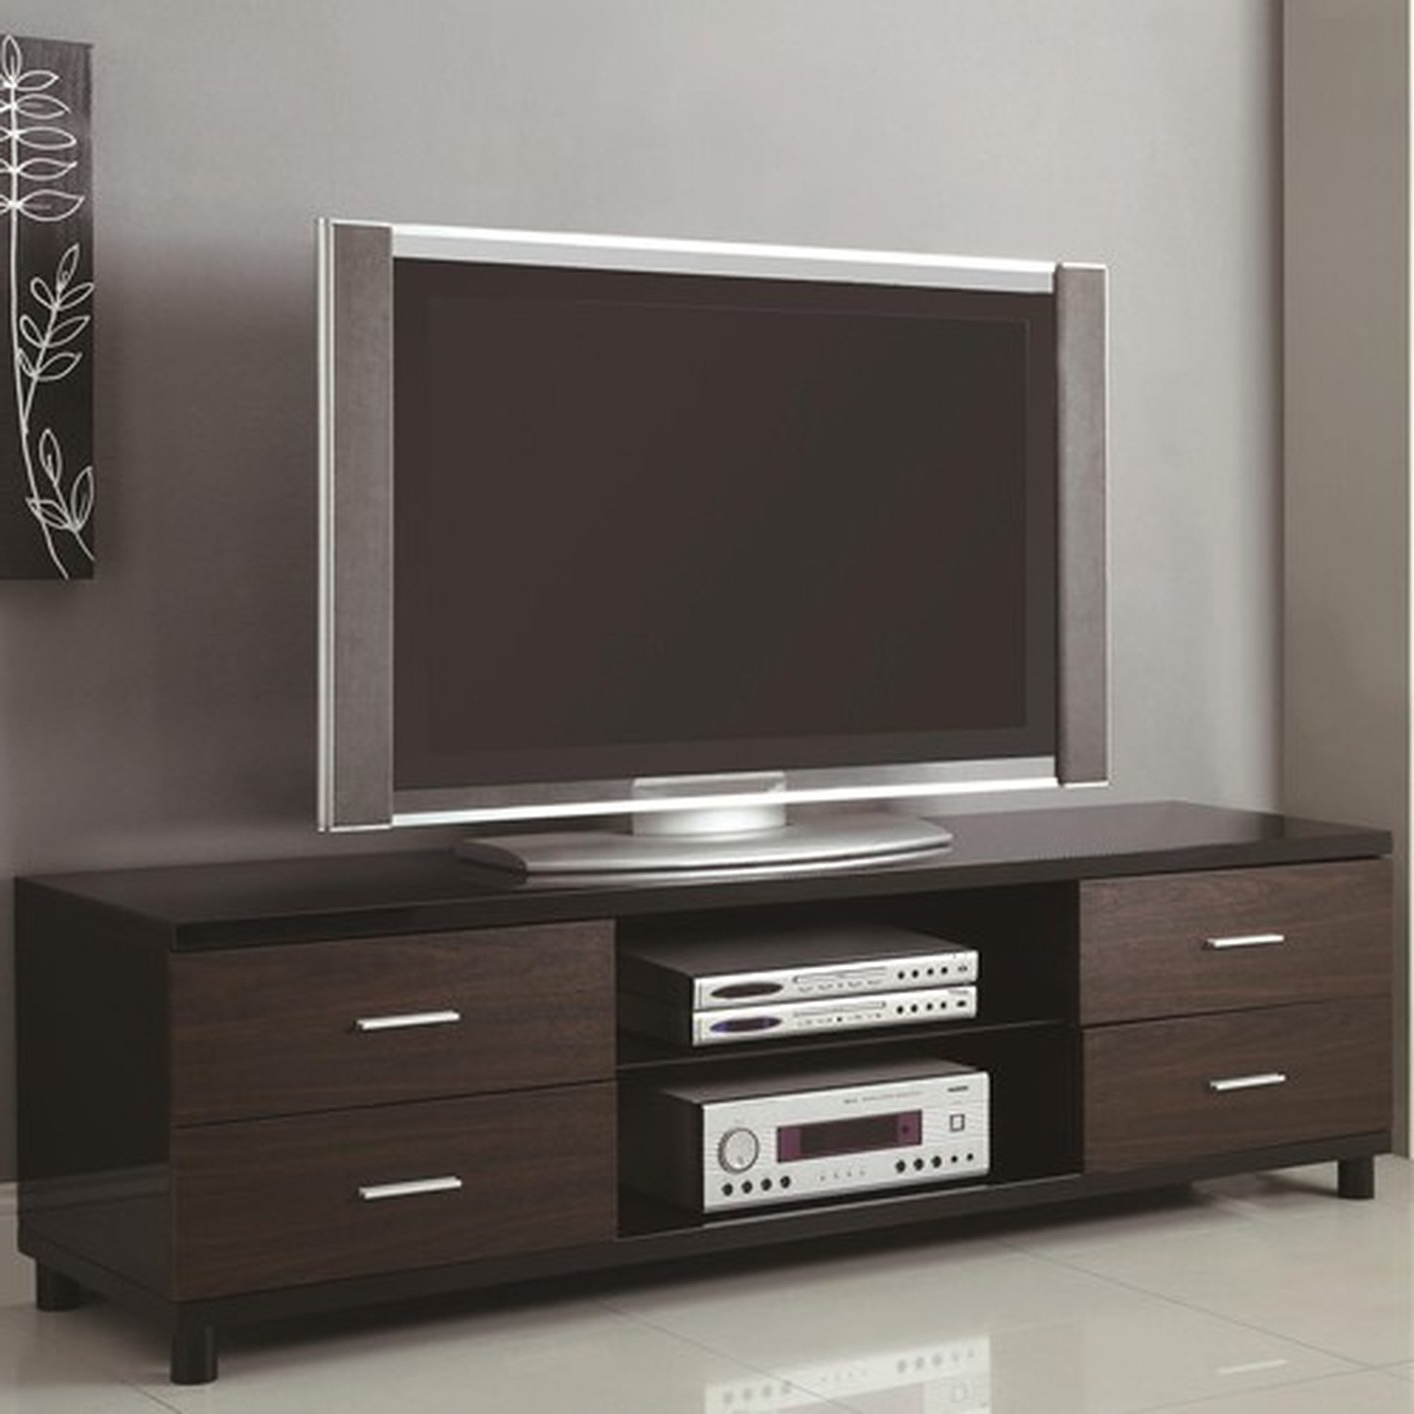 Wooden Tv Stands With Doors Within Most Current Brown Wood Tv Stand – Steal A Sofa Furniture Outlet Los Angeles Ca (View 4 of 20)